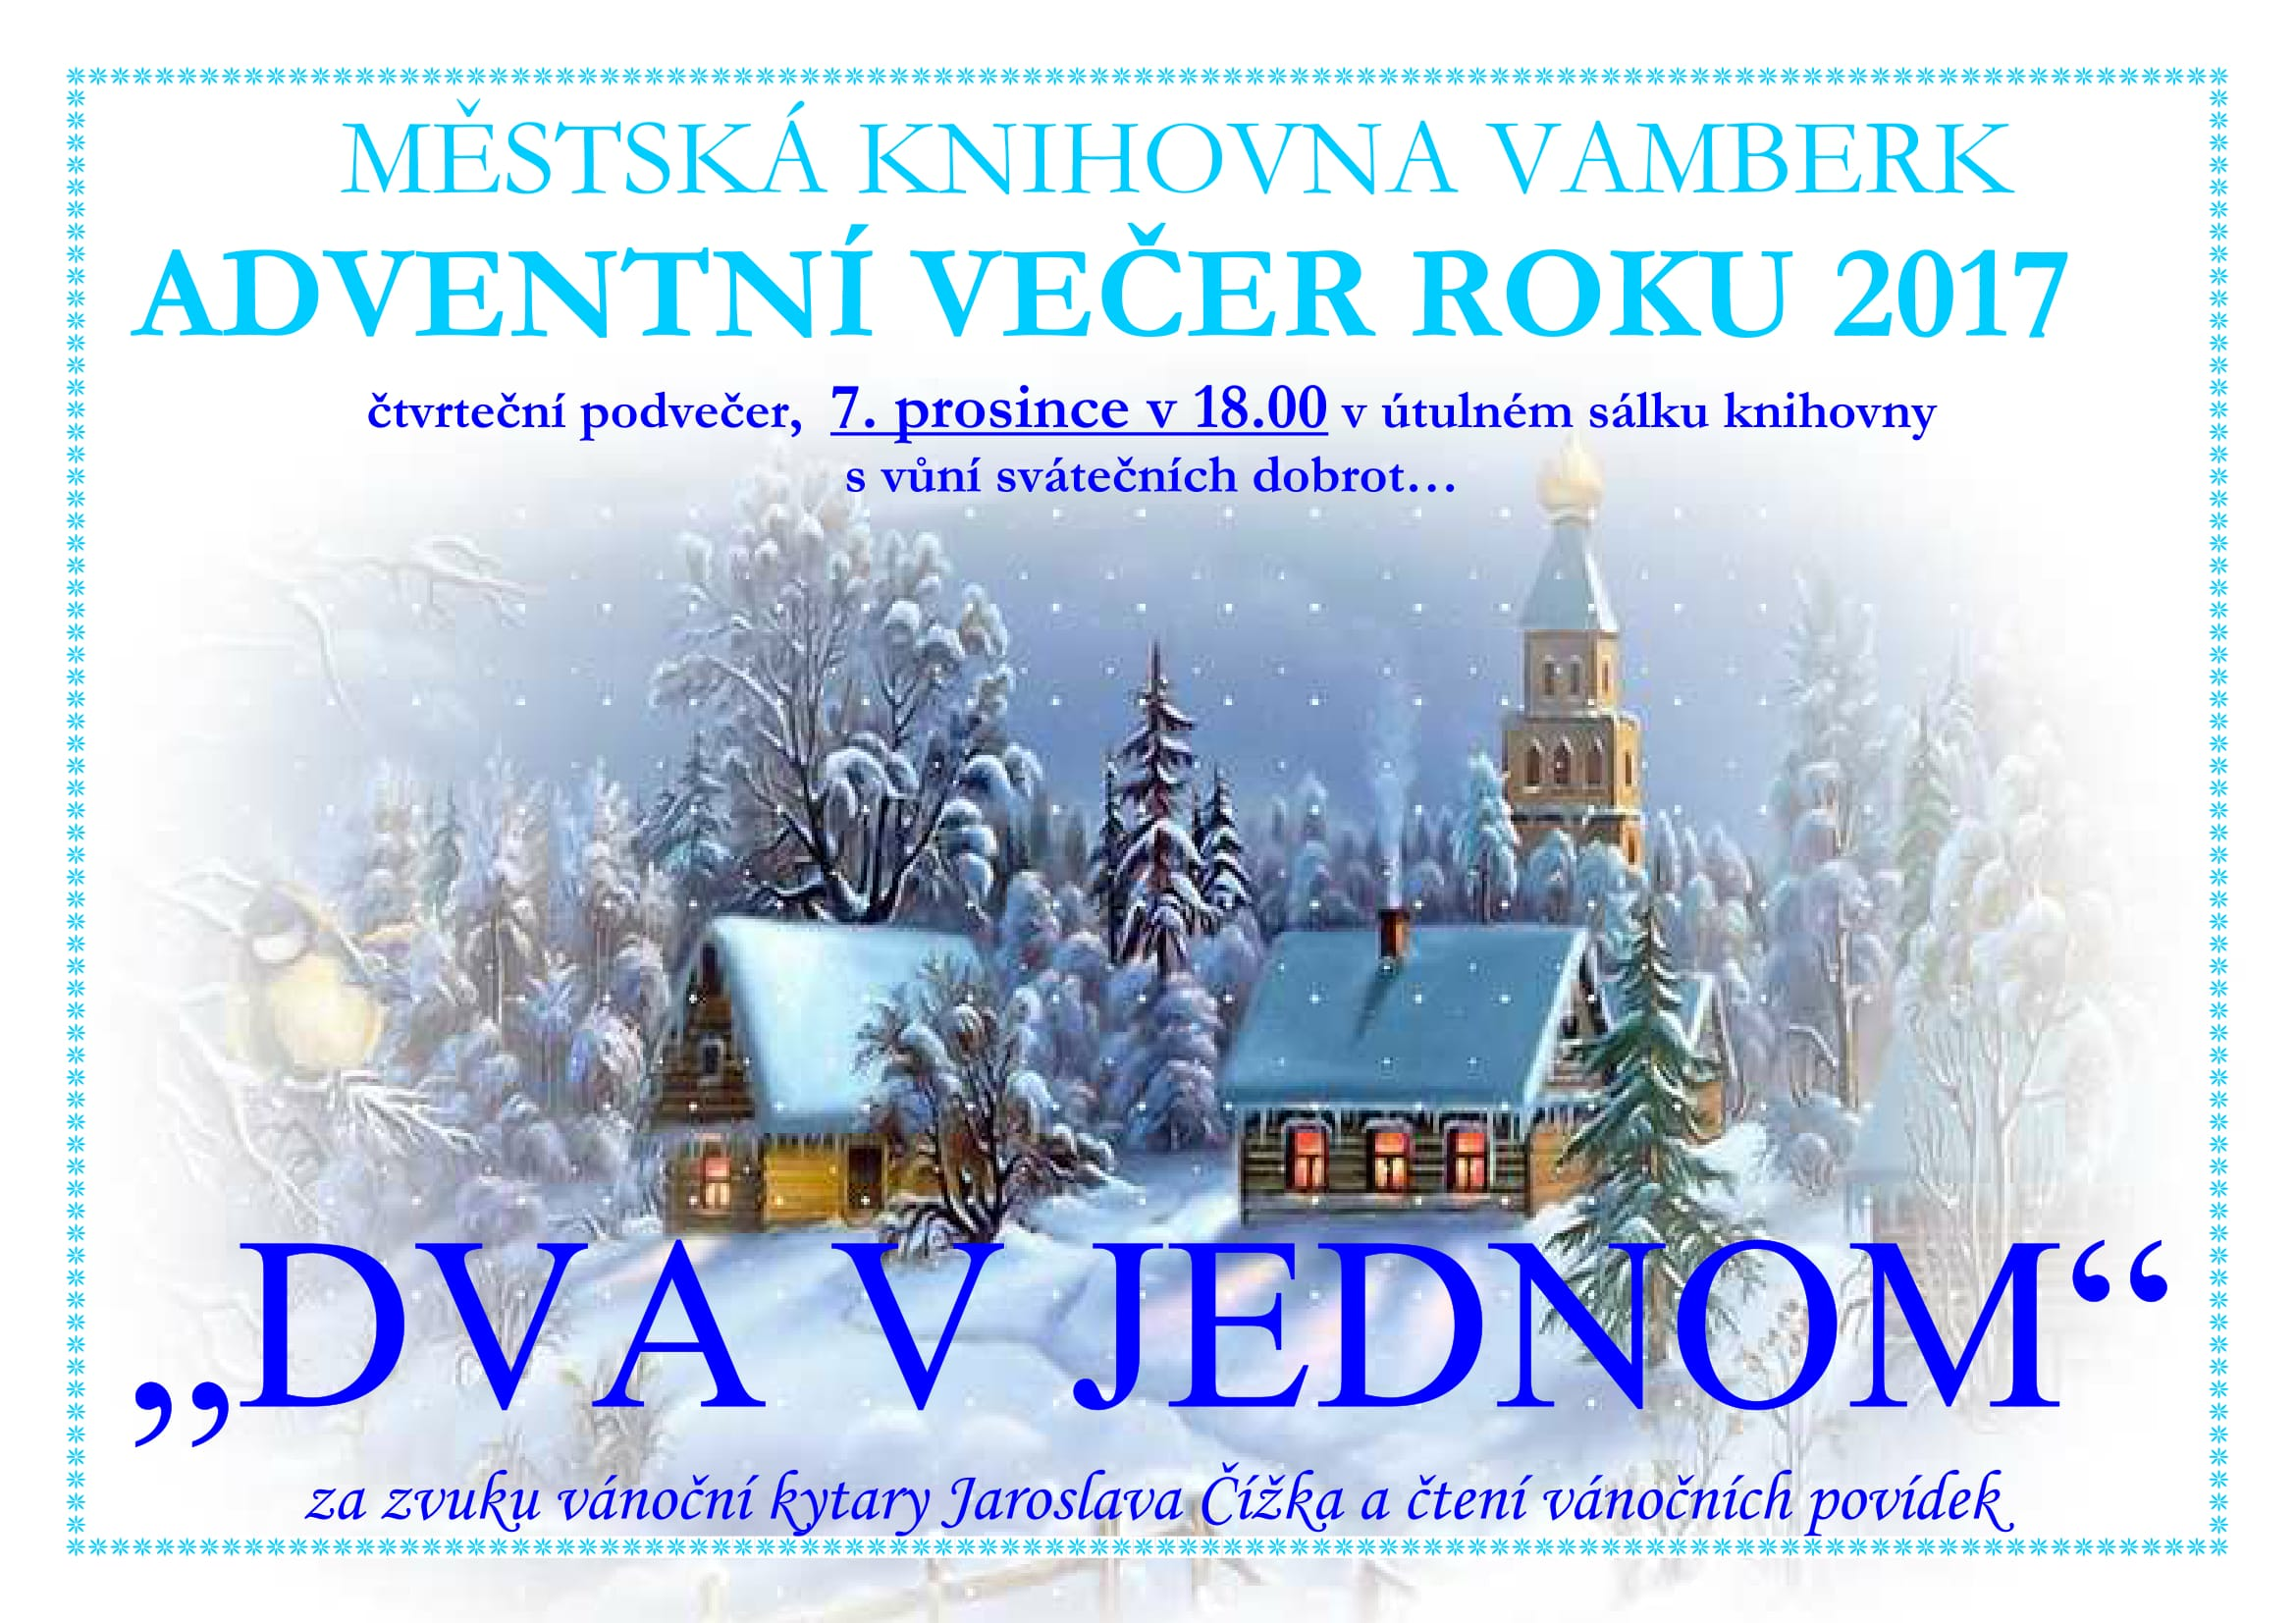 Adventni vecer 2017